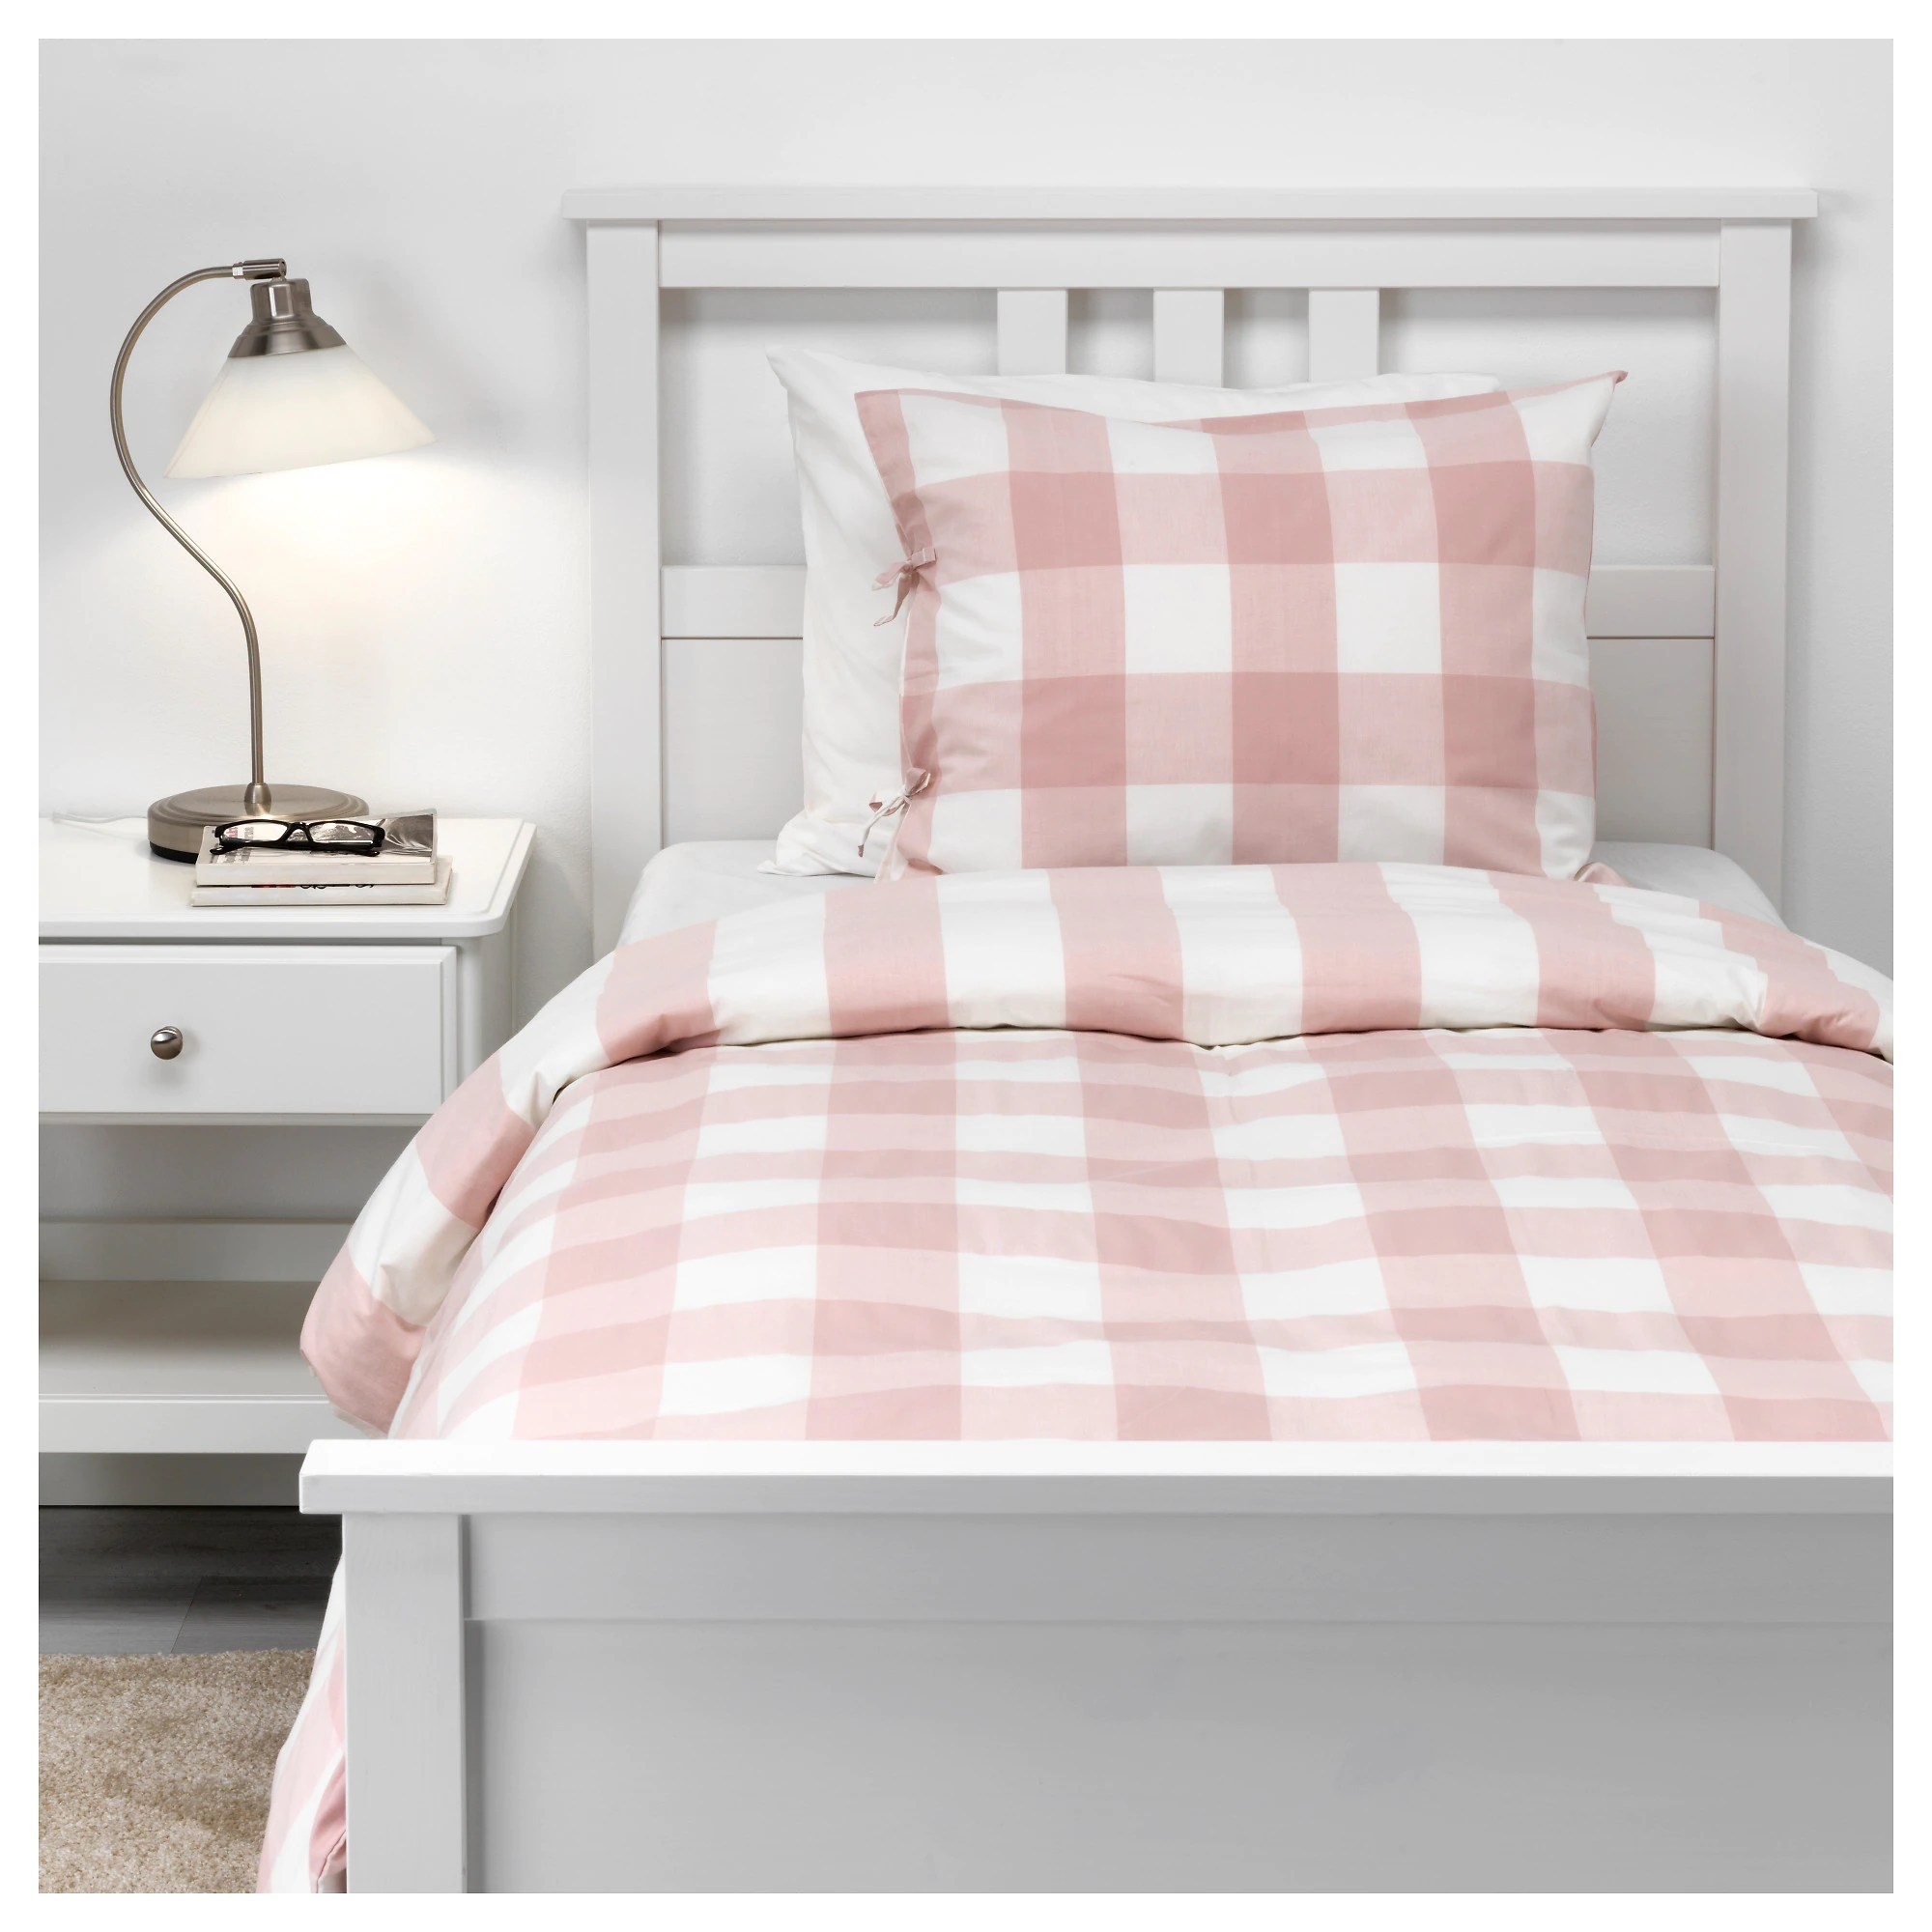 Pink Duvet Cover Emmie Ruta Duvet Cover And Pillowcase S Light Pink White